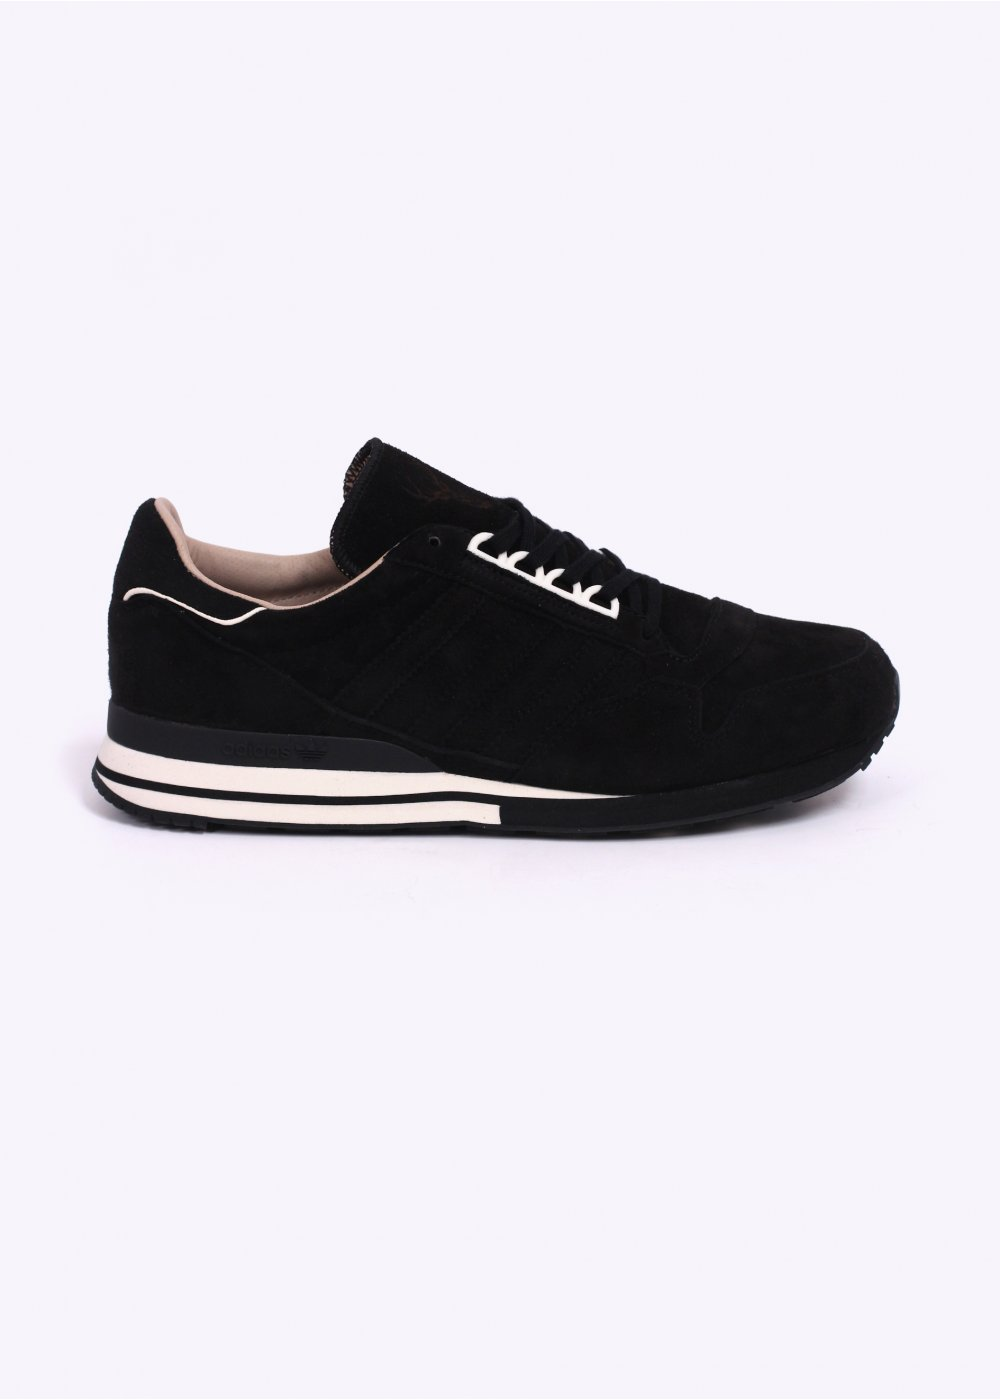 f6529191a adidas Originals ZX 500 OG  Made In Germany  Trainers - Black ...